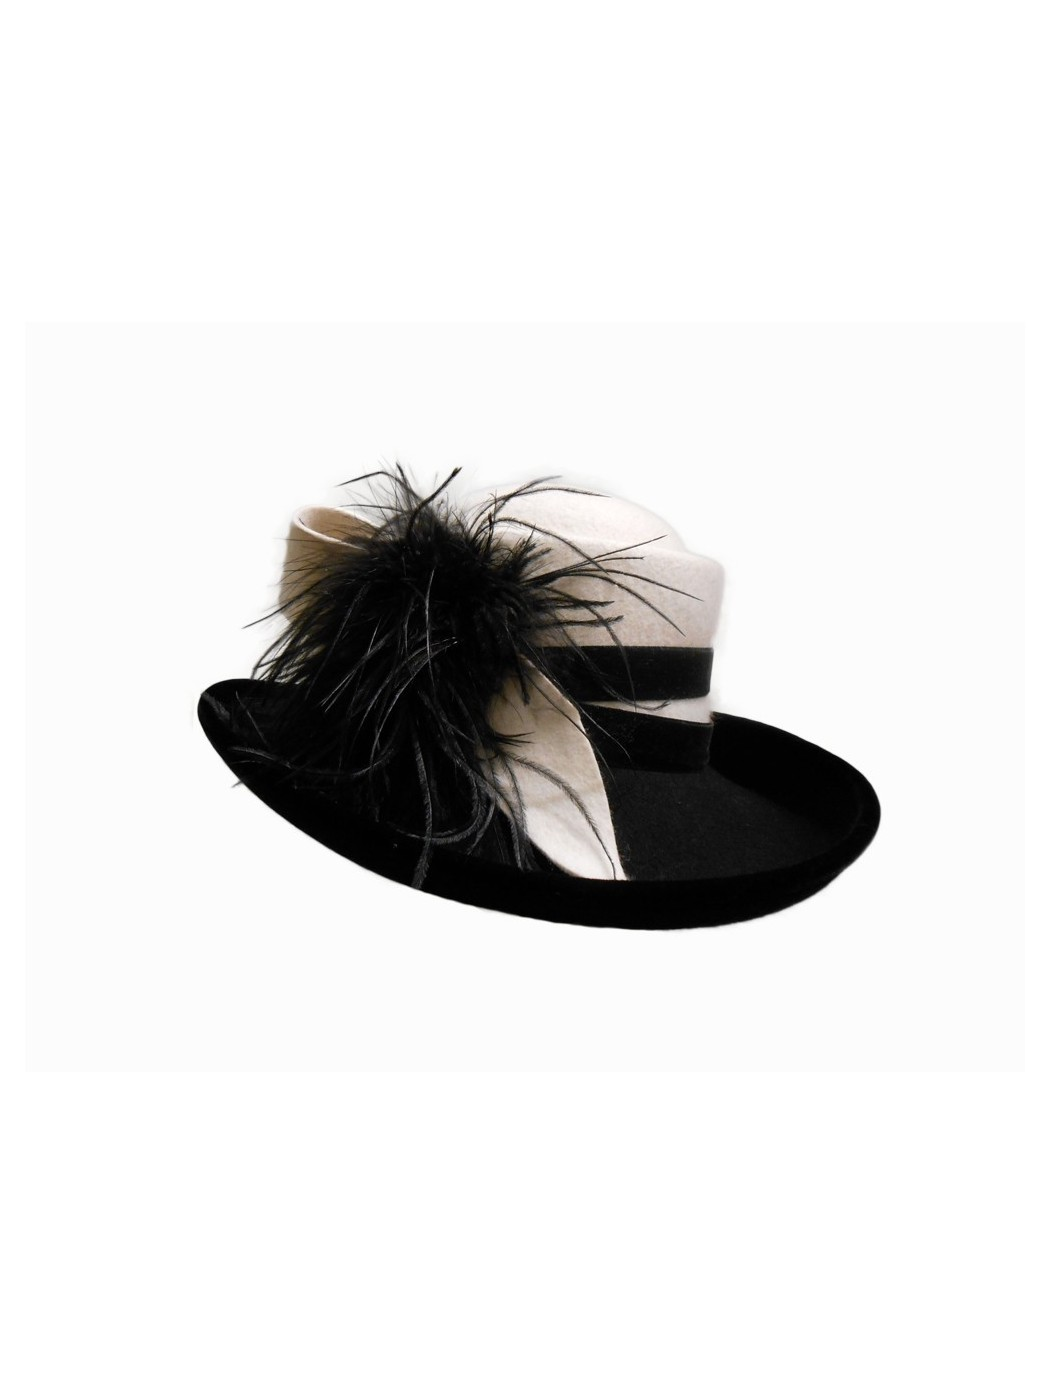 Black and white wool hat